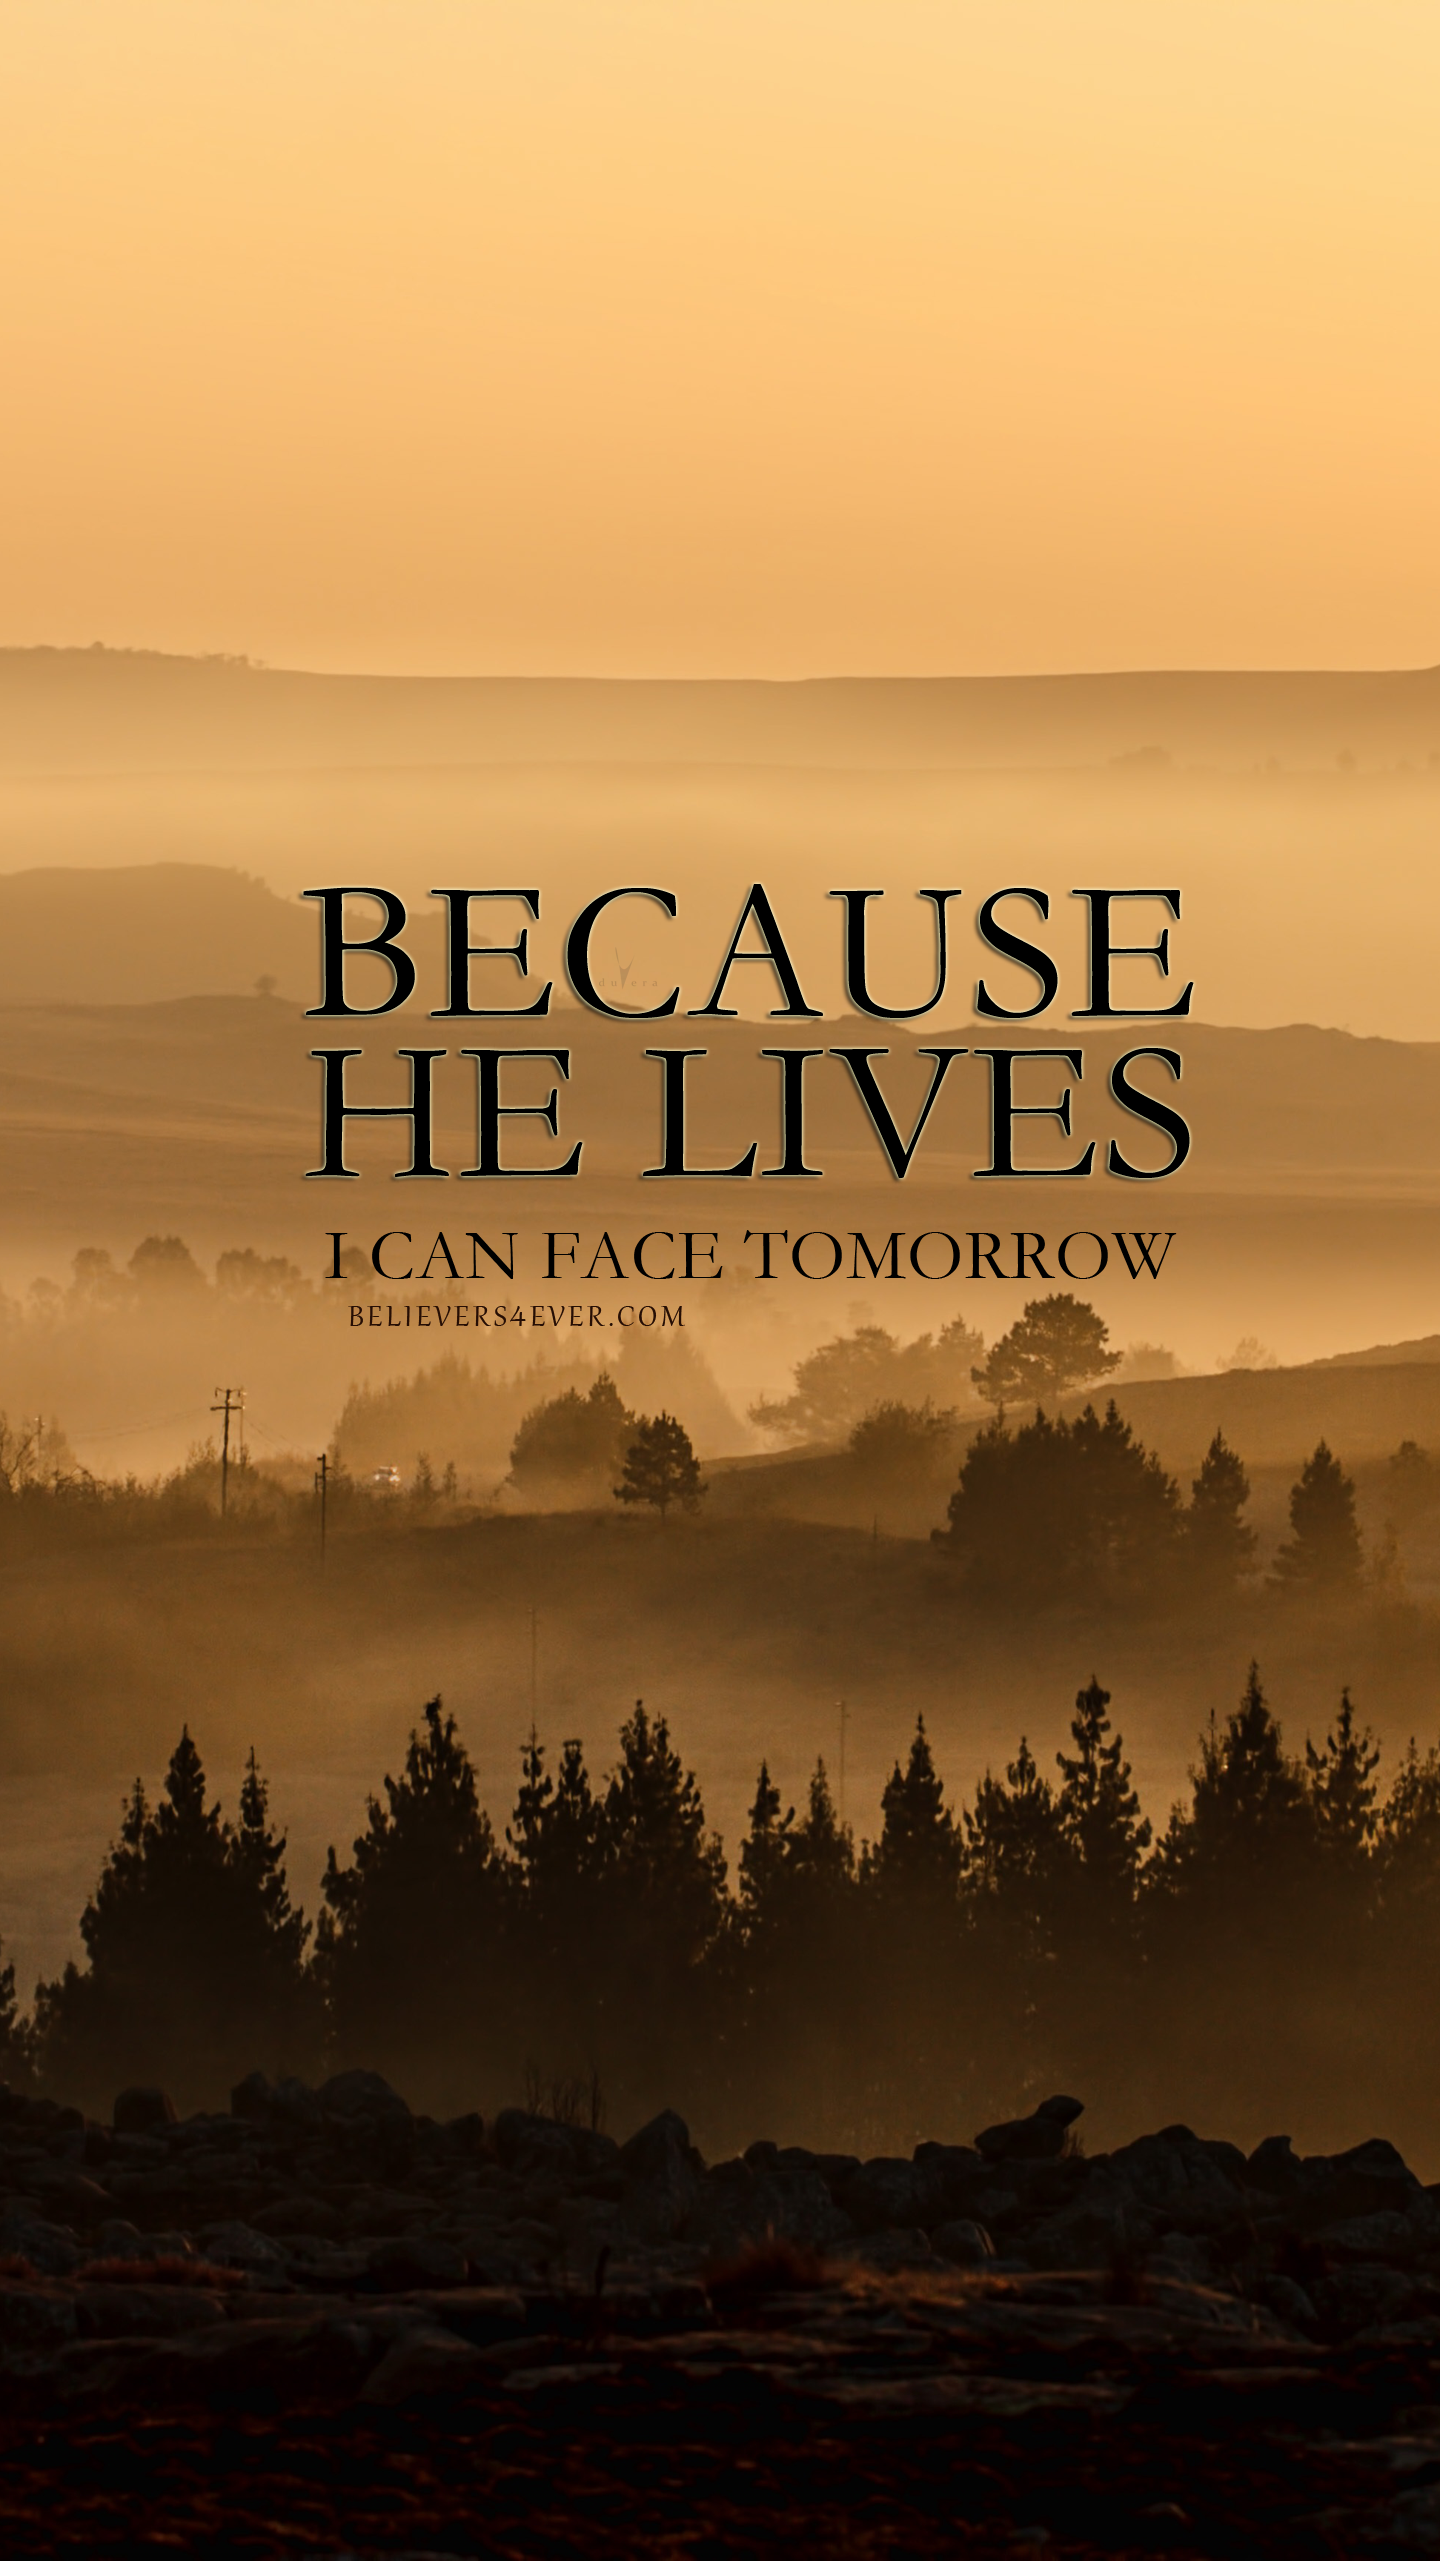 Because He lives Christian iphone wallpaper, Because he